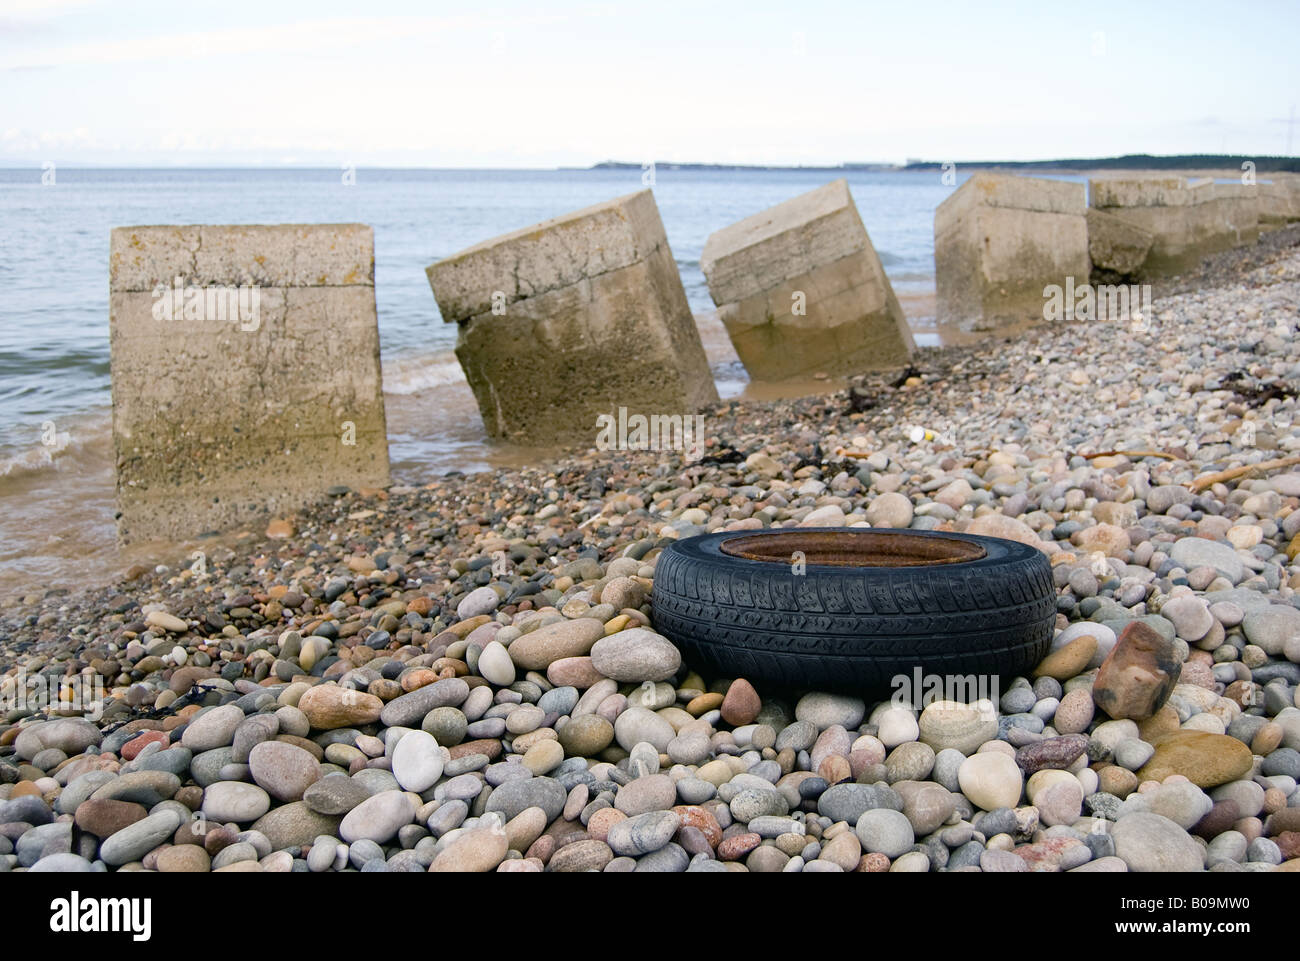 A tyre and concrete obstacles on Roseisle Beach - Stock Image